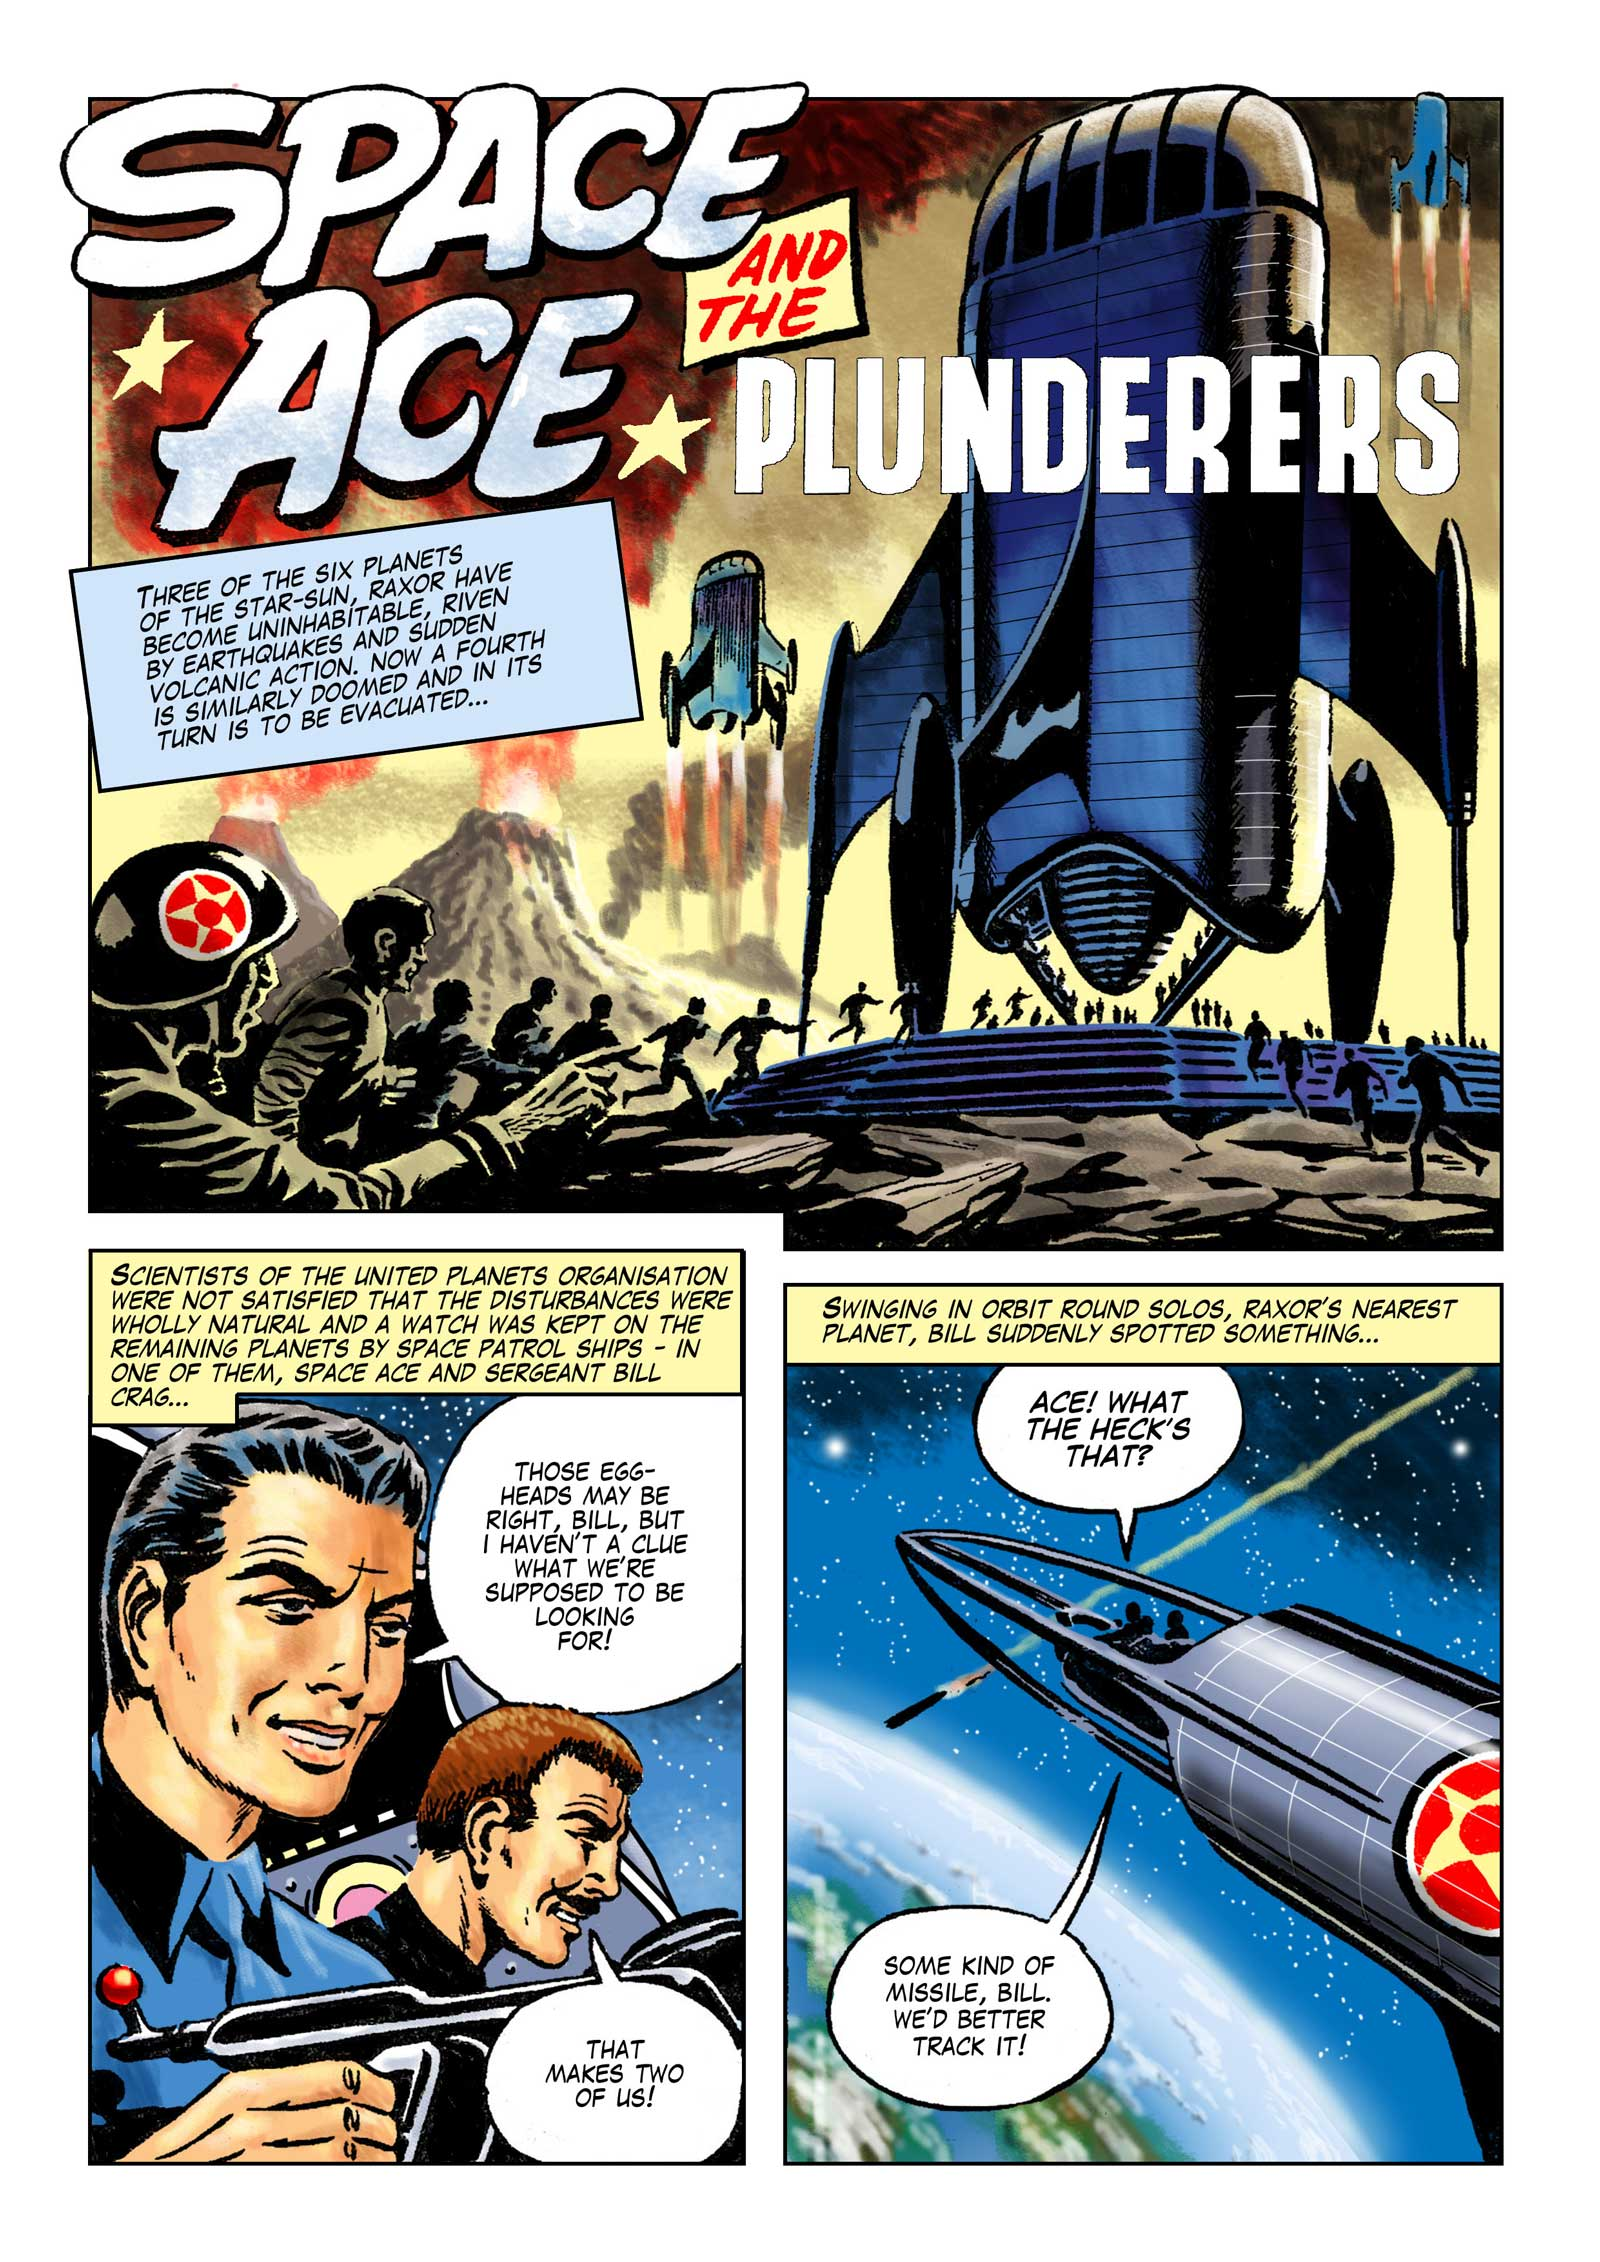 Space Ace Volume 9 - The Plunderers